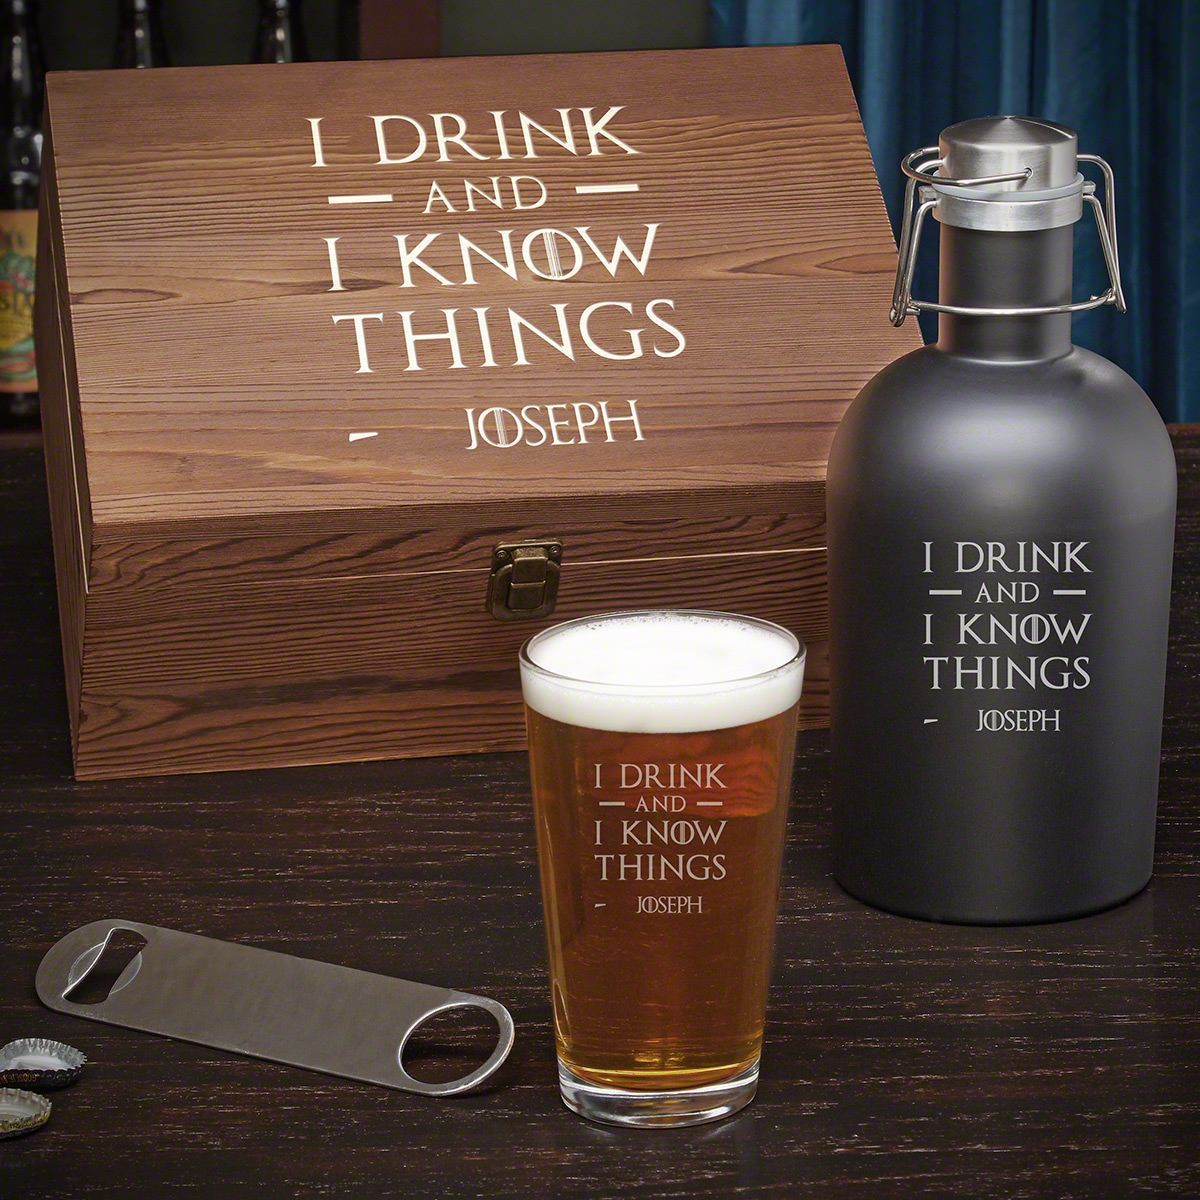 I Drink & I Know Things Custom Beer Gift Box Beer gift